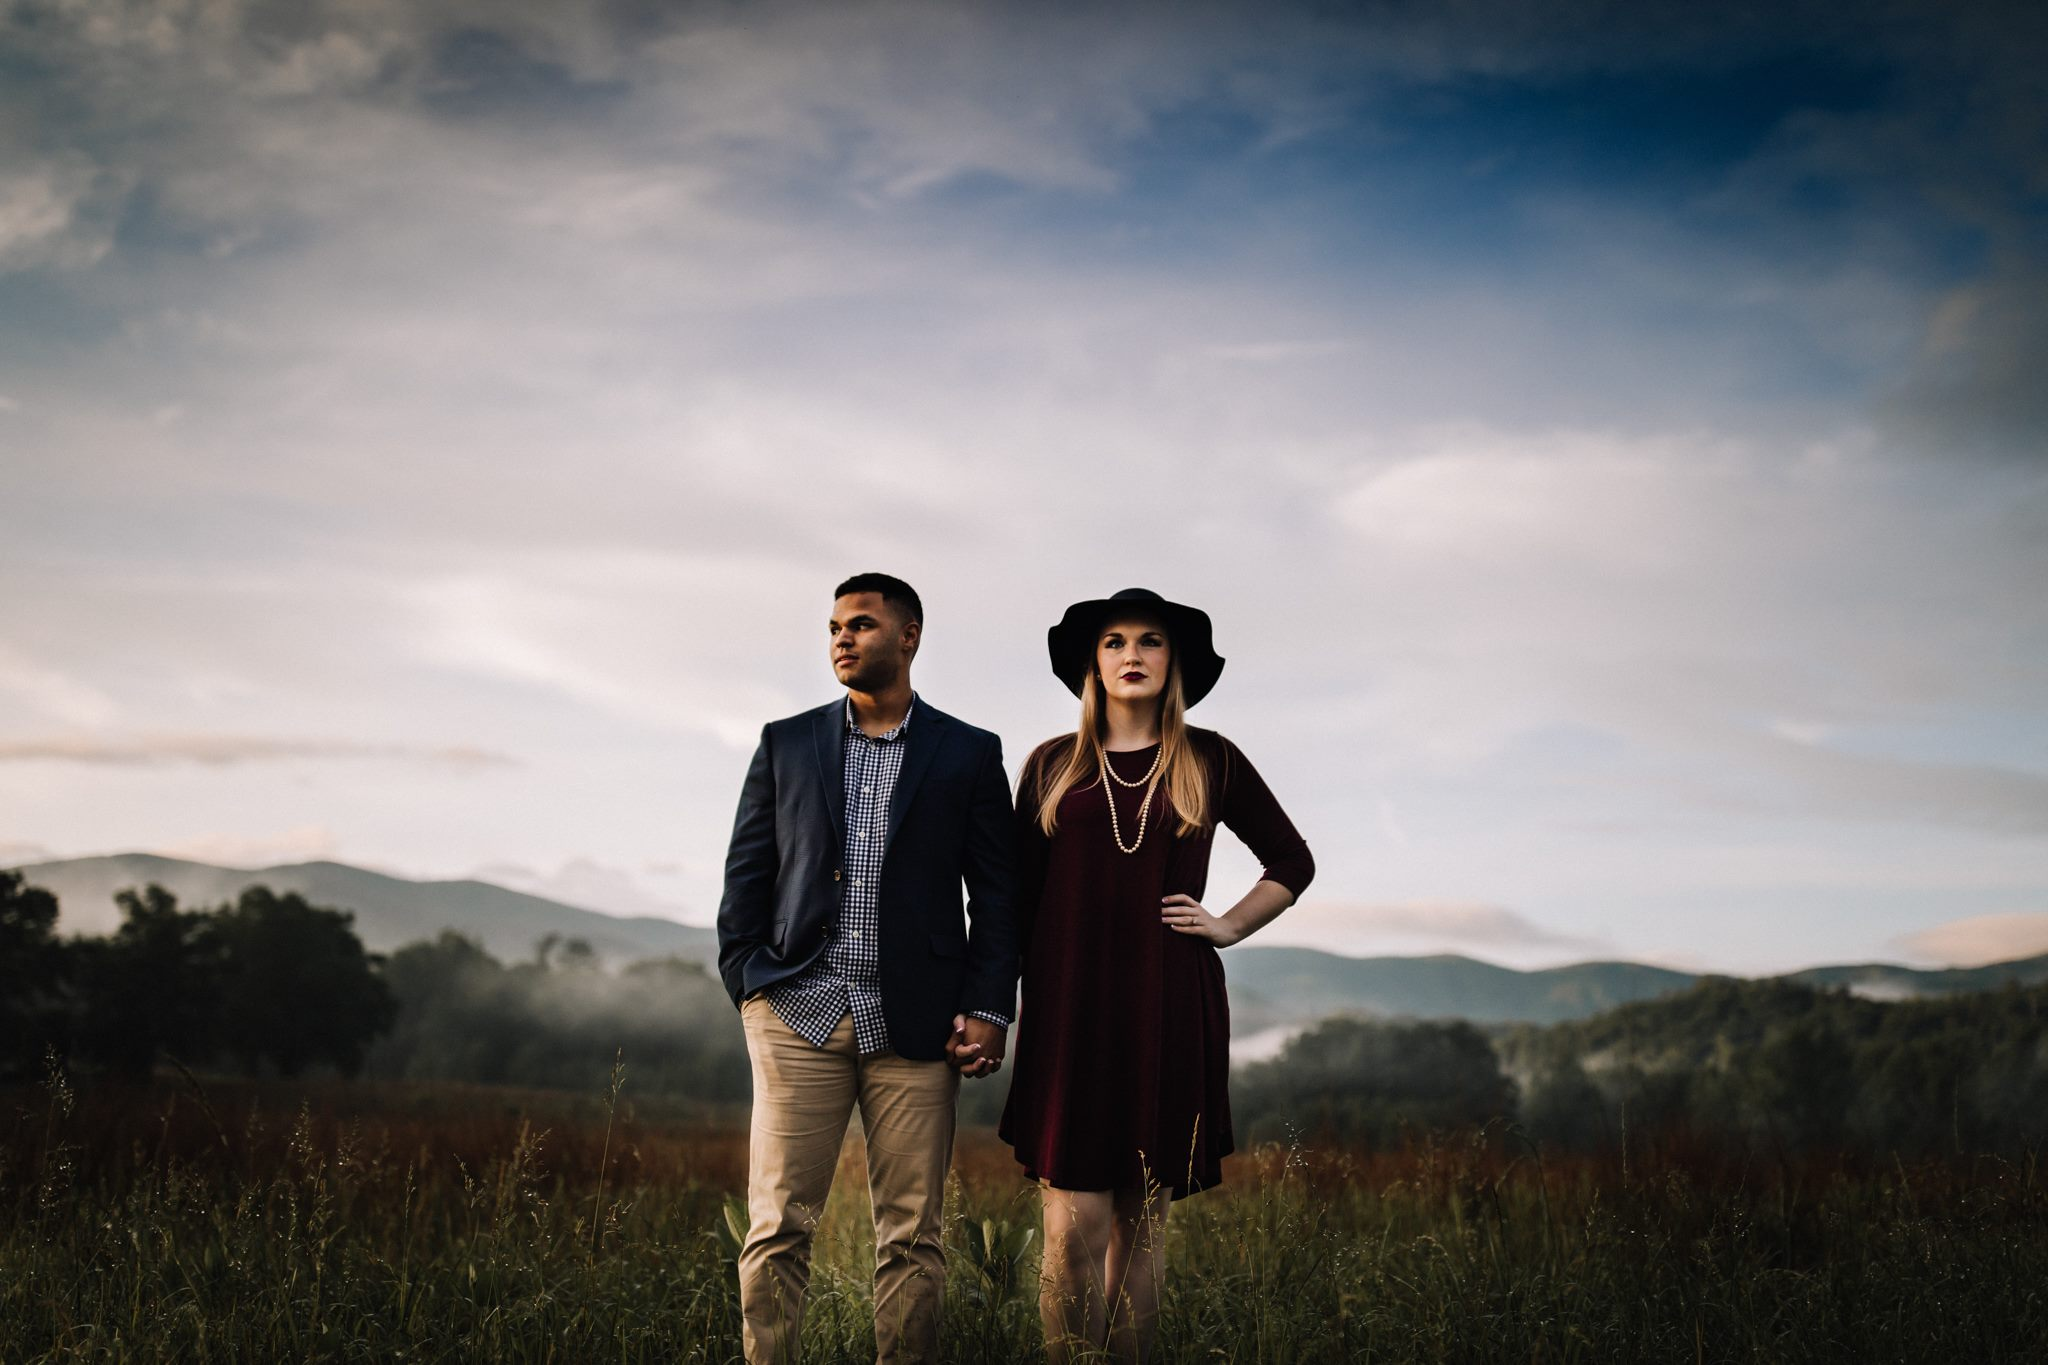 billie-shaye style photography - www.billieshayestyle.com - smokey mountain cades cove summer rain engagement session - gatlinburg tennessee-24.jpg